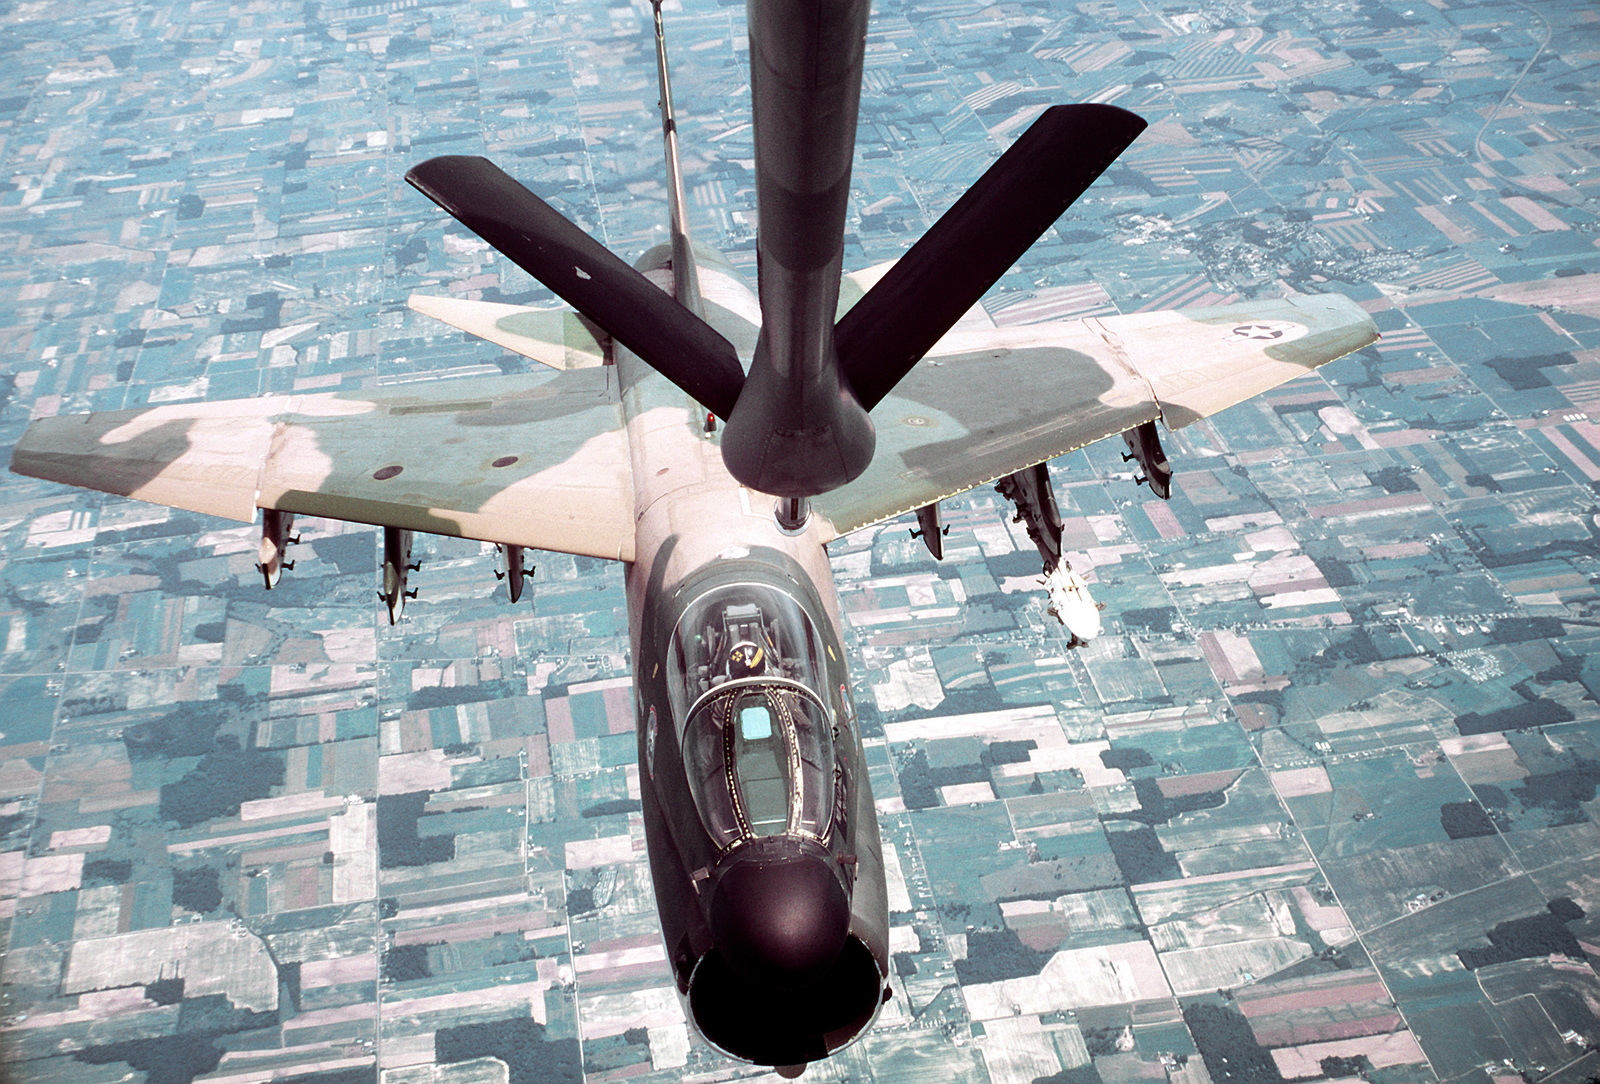 AN air-to-air front view of an A-7 Corsair II aircraft heading toward a KC-135 Stratotanker aircraft for refueling, as seen from the boom operator's section of the tanker, during exercise Sentry Castle '81. The Corsair is from the 112th Tactical Fighter Group, Pennsylvania Air National Guard, and the Stratotanker is from the 147th Air Refueling Squadron